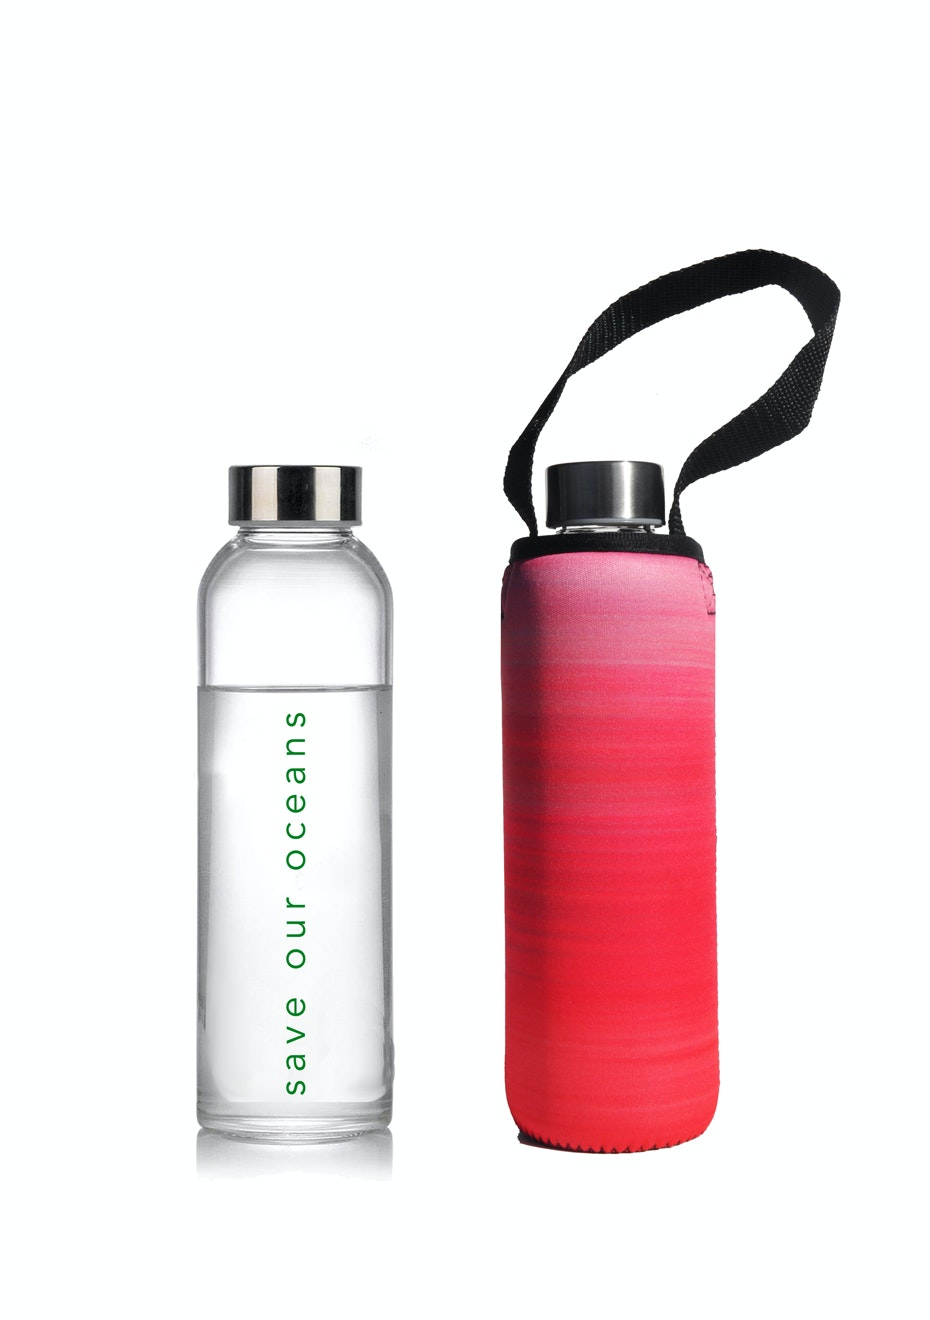 BBBYO - Glass Is Greener Bottle 570 ml + Carry Cover (Sky Print) - 570 ml